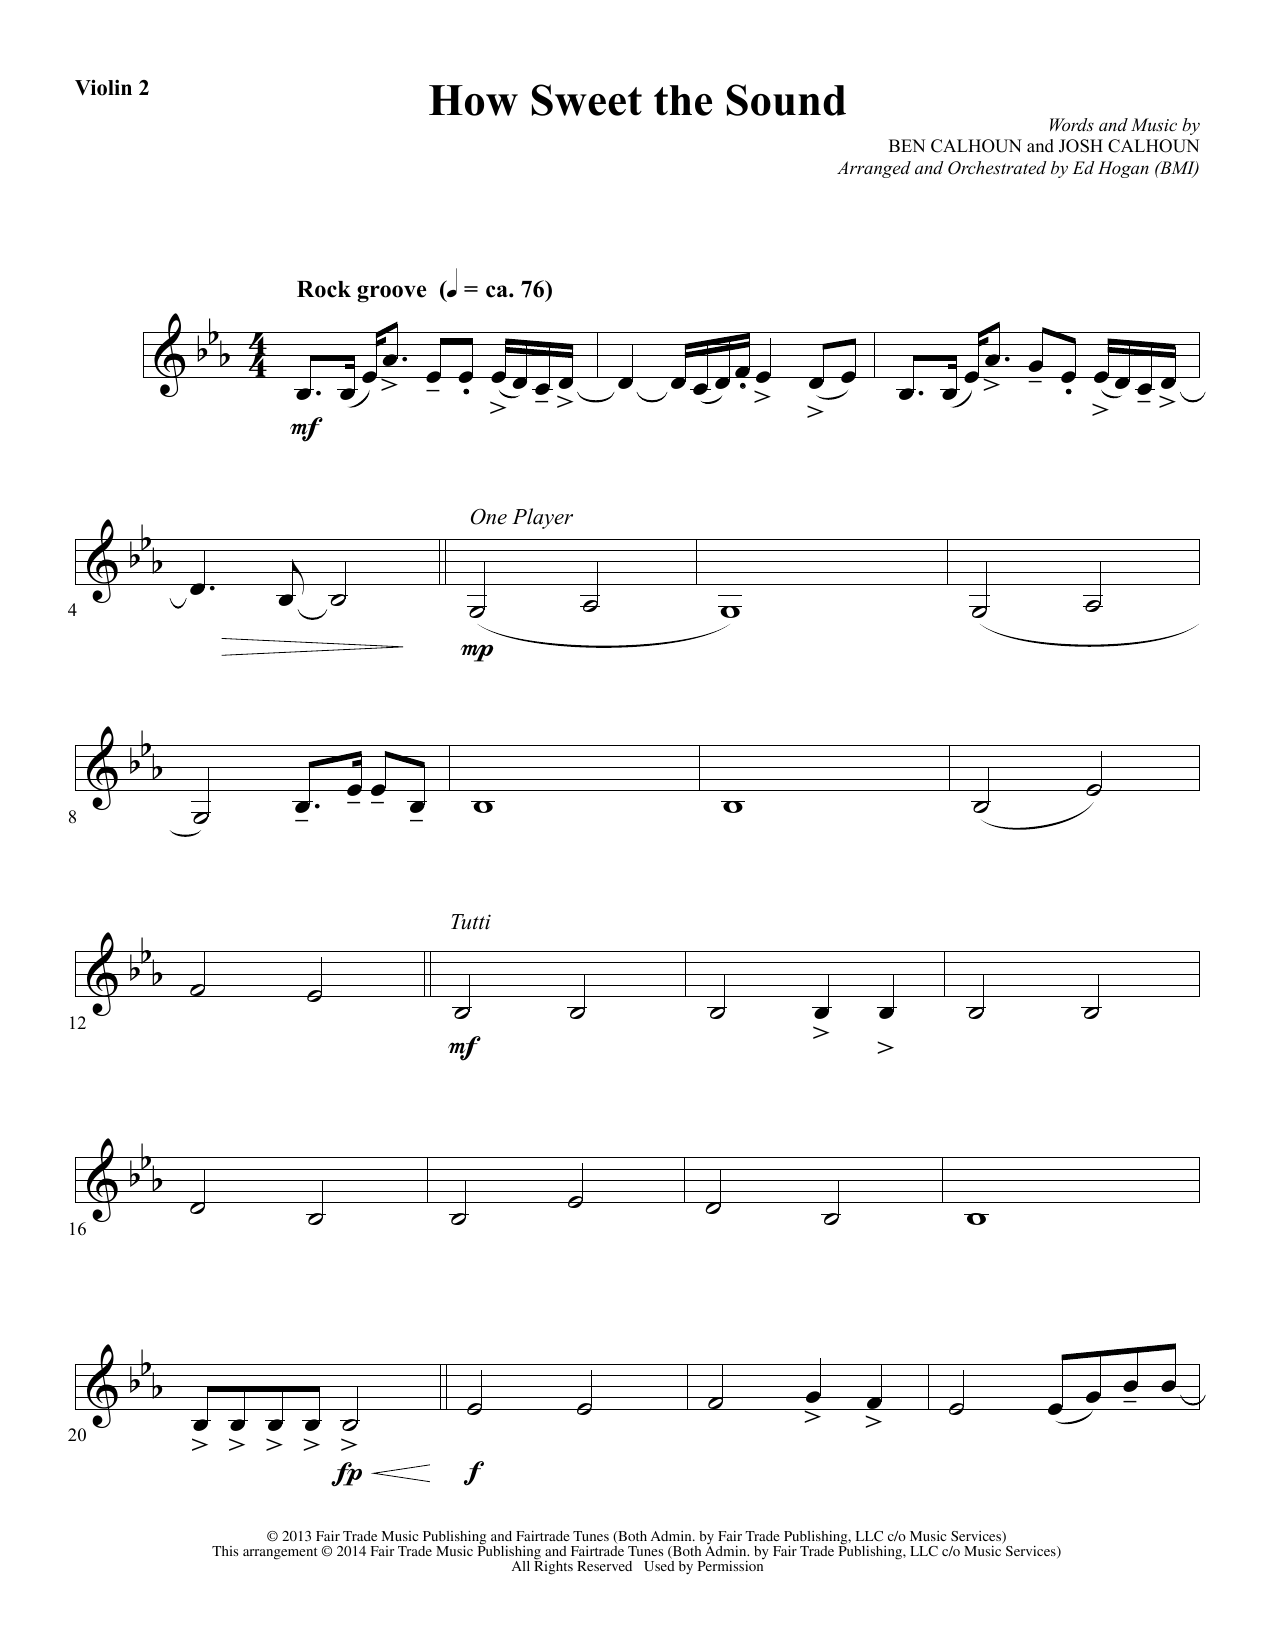 How Sweet the Sound - Violin 2 Sheet Music